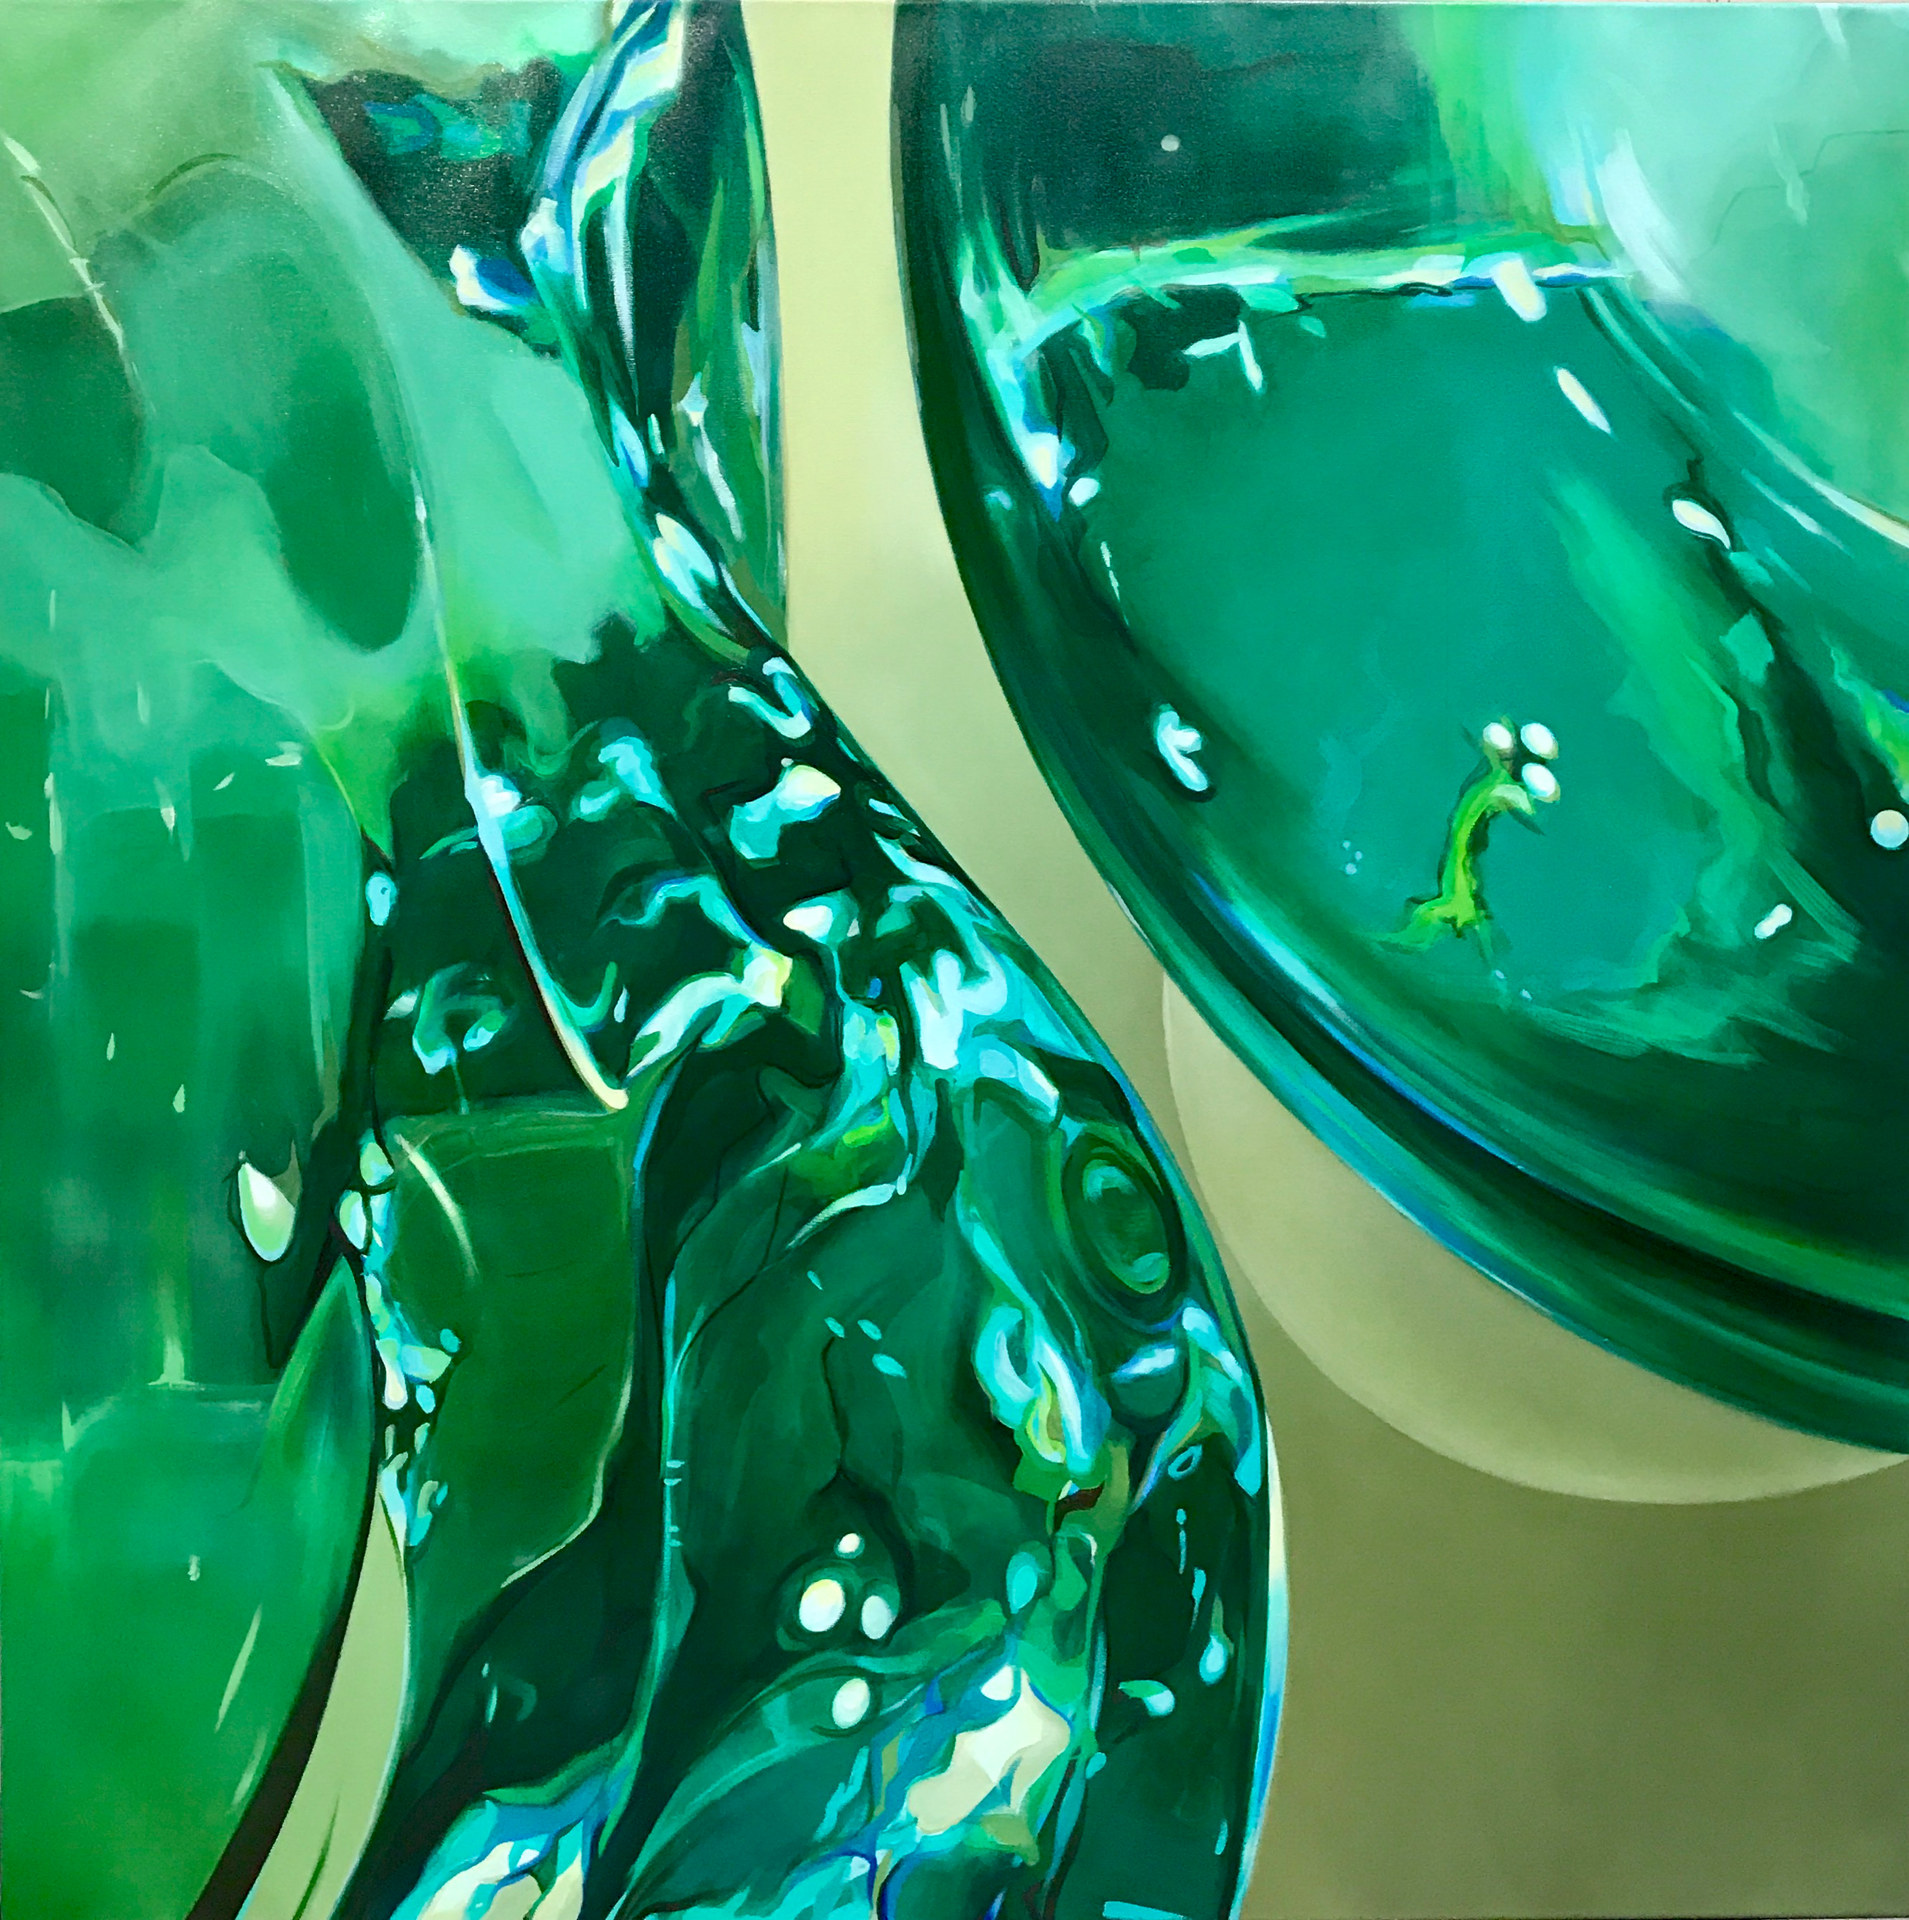 Reflections of the light #7, Emerald